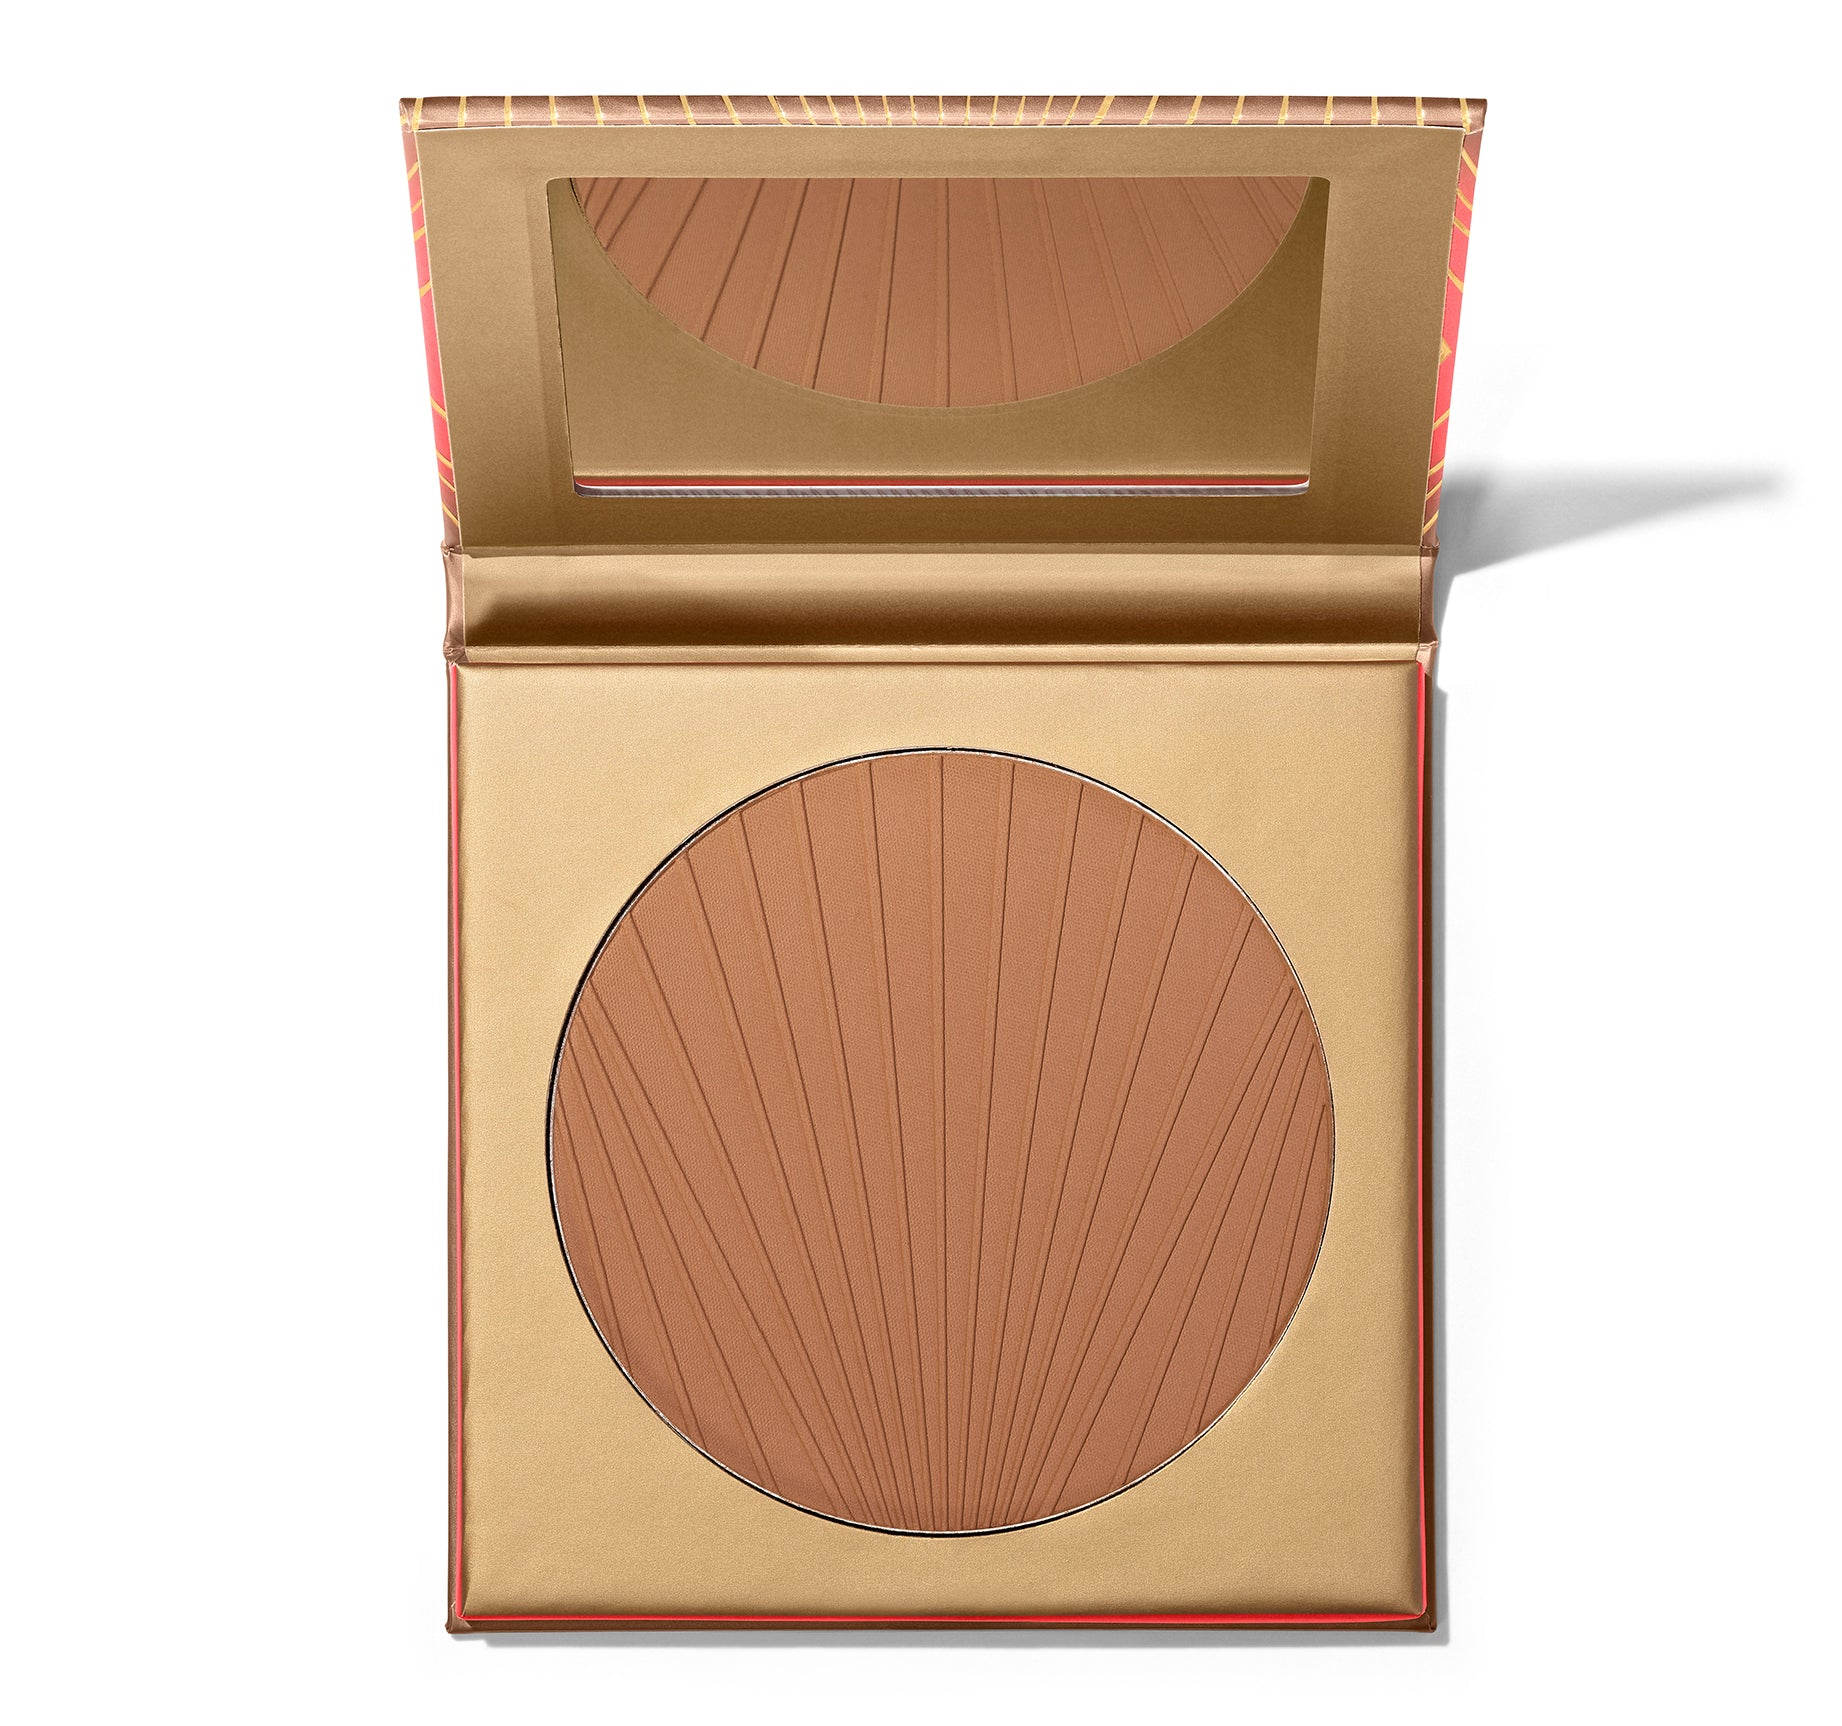 GLAMABRONZE FACE & BODY BRONZER - MEGASTAR, view larger image